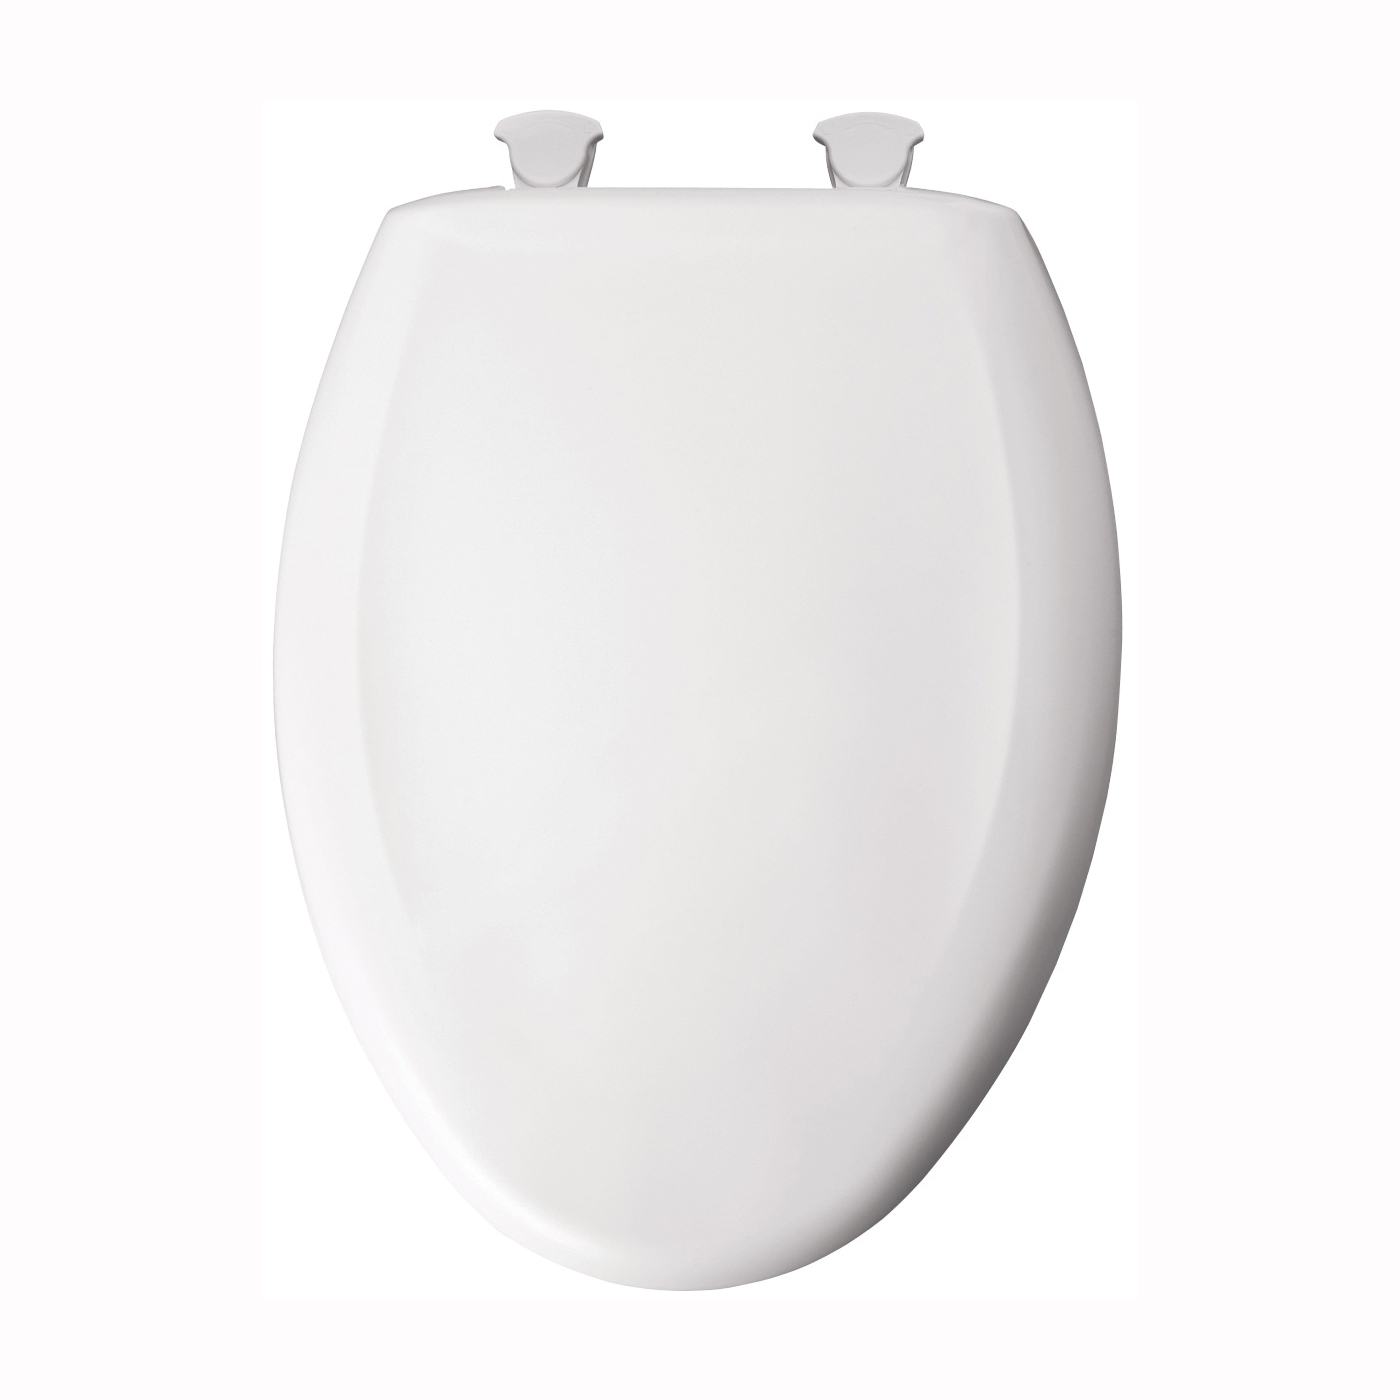 Picture of Mayfair 120SLOW-000 Toilet Seat, Elongated, Plastic, White, Twist Hinge